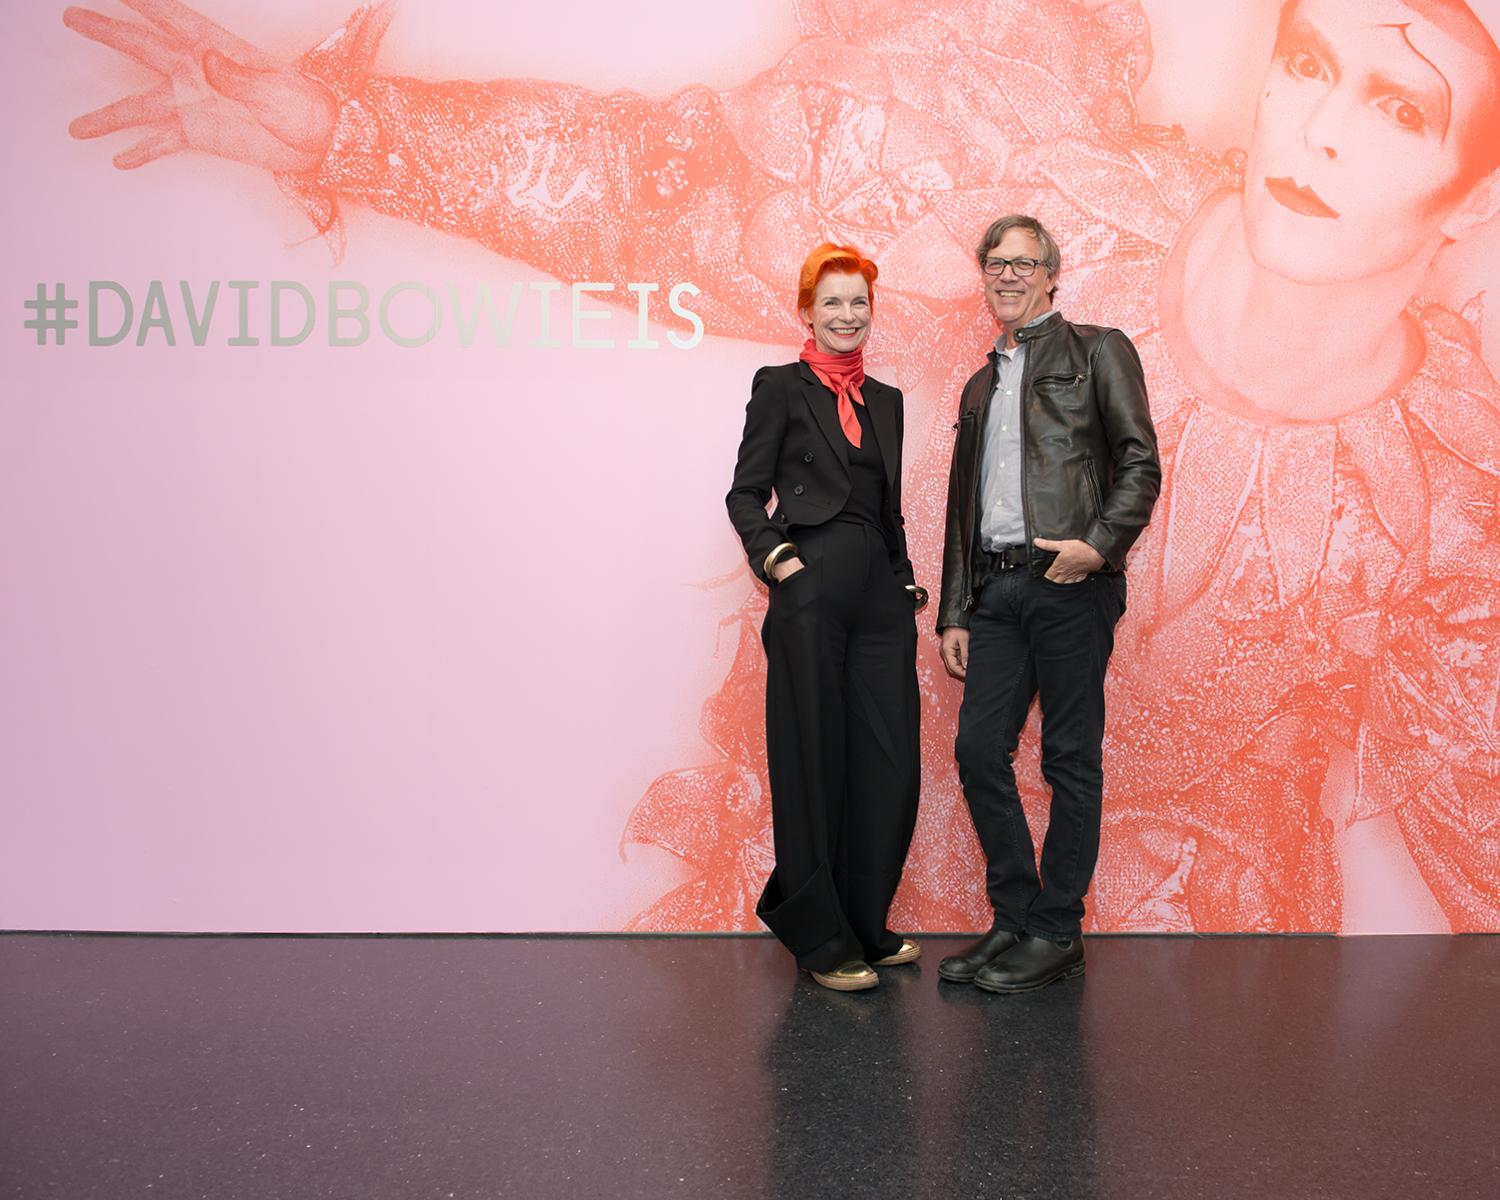 A woman and man posing at the entrance of the exhibition *David Bowie Is*.